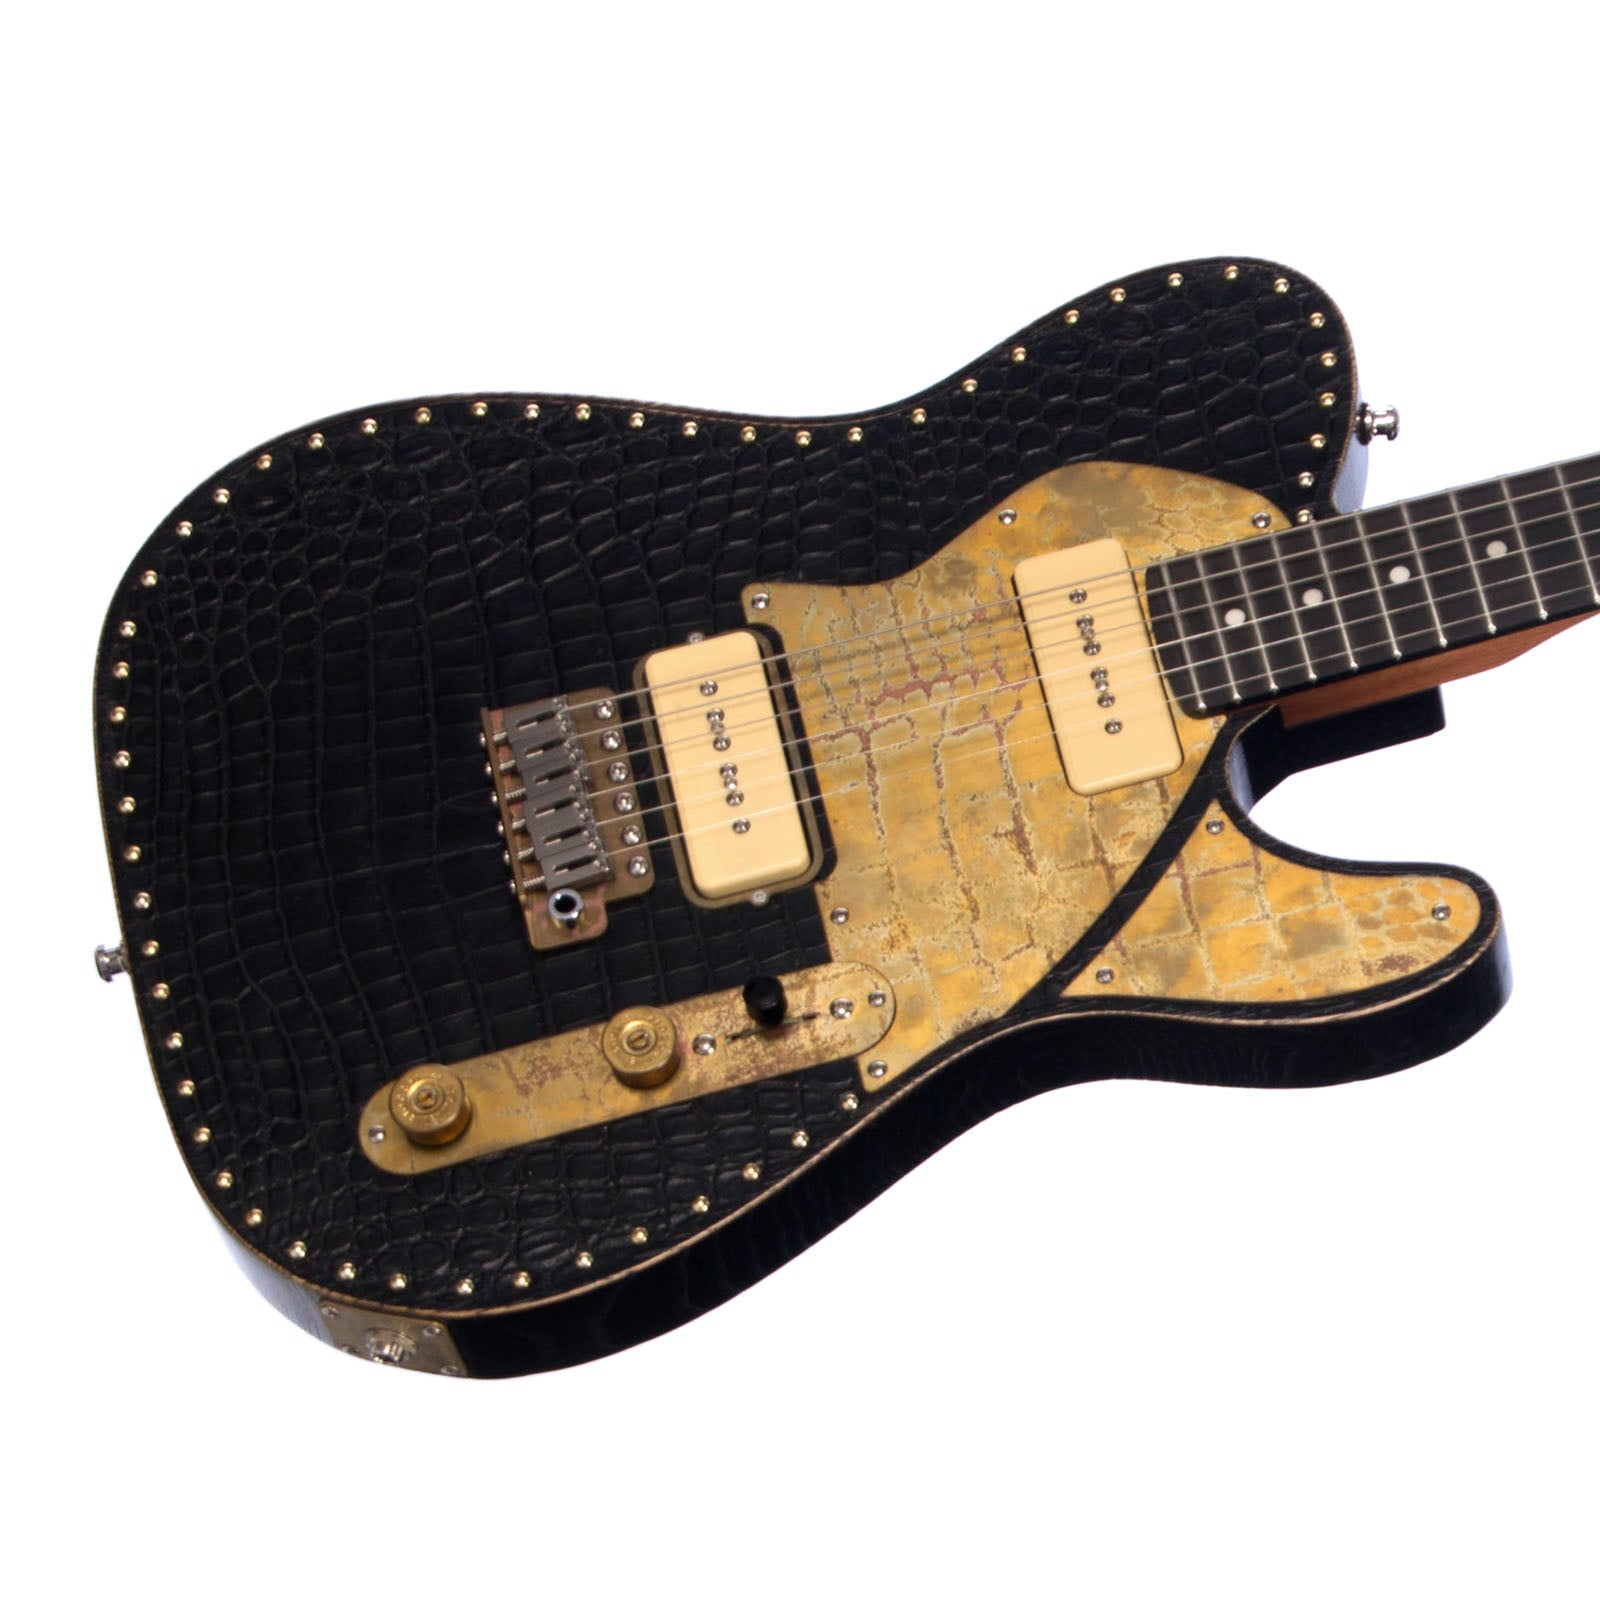 Paoletti Guitars Leather Series Nancy 2p90 Black Crocodile Re Switching Options For P90 Humbucker Combination Tele With 2 X P